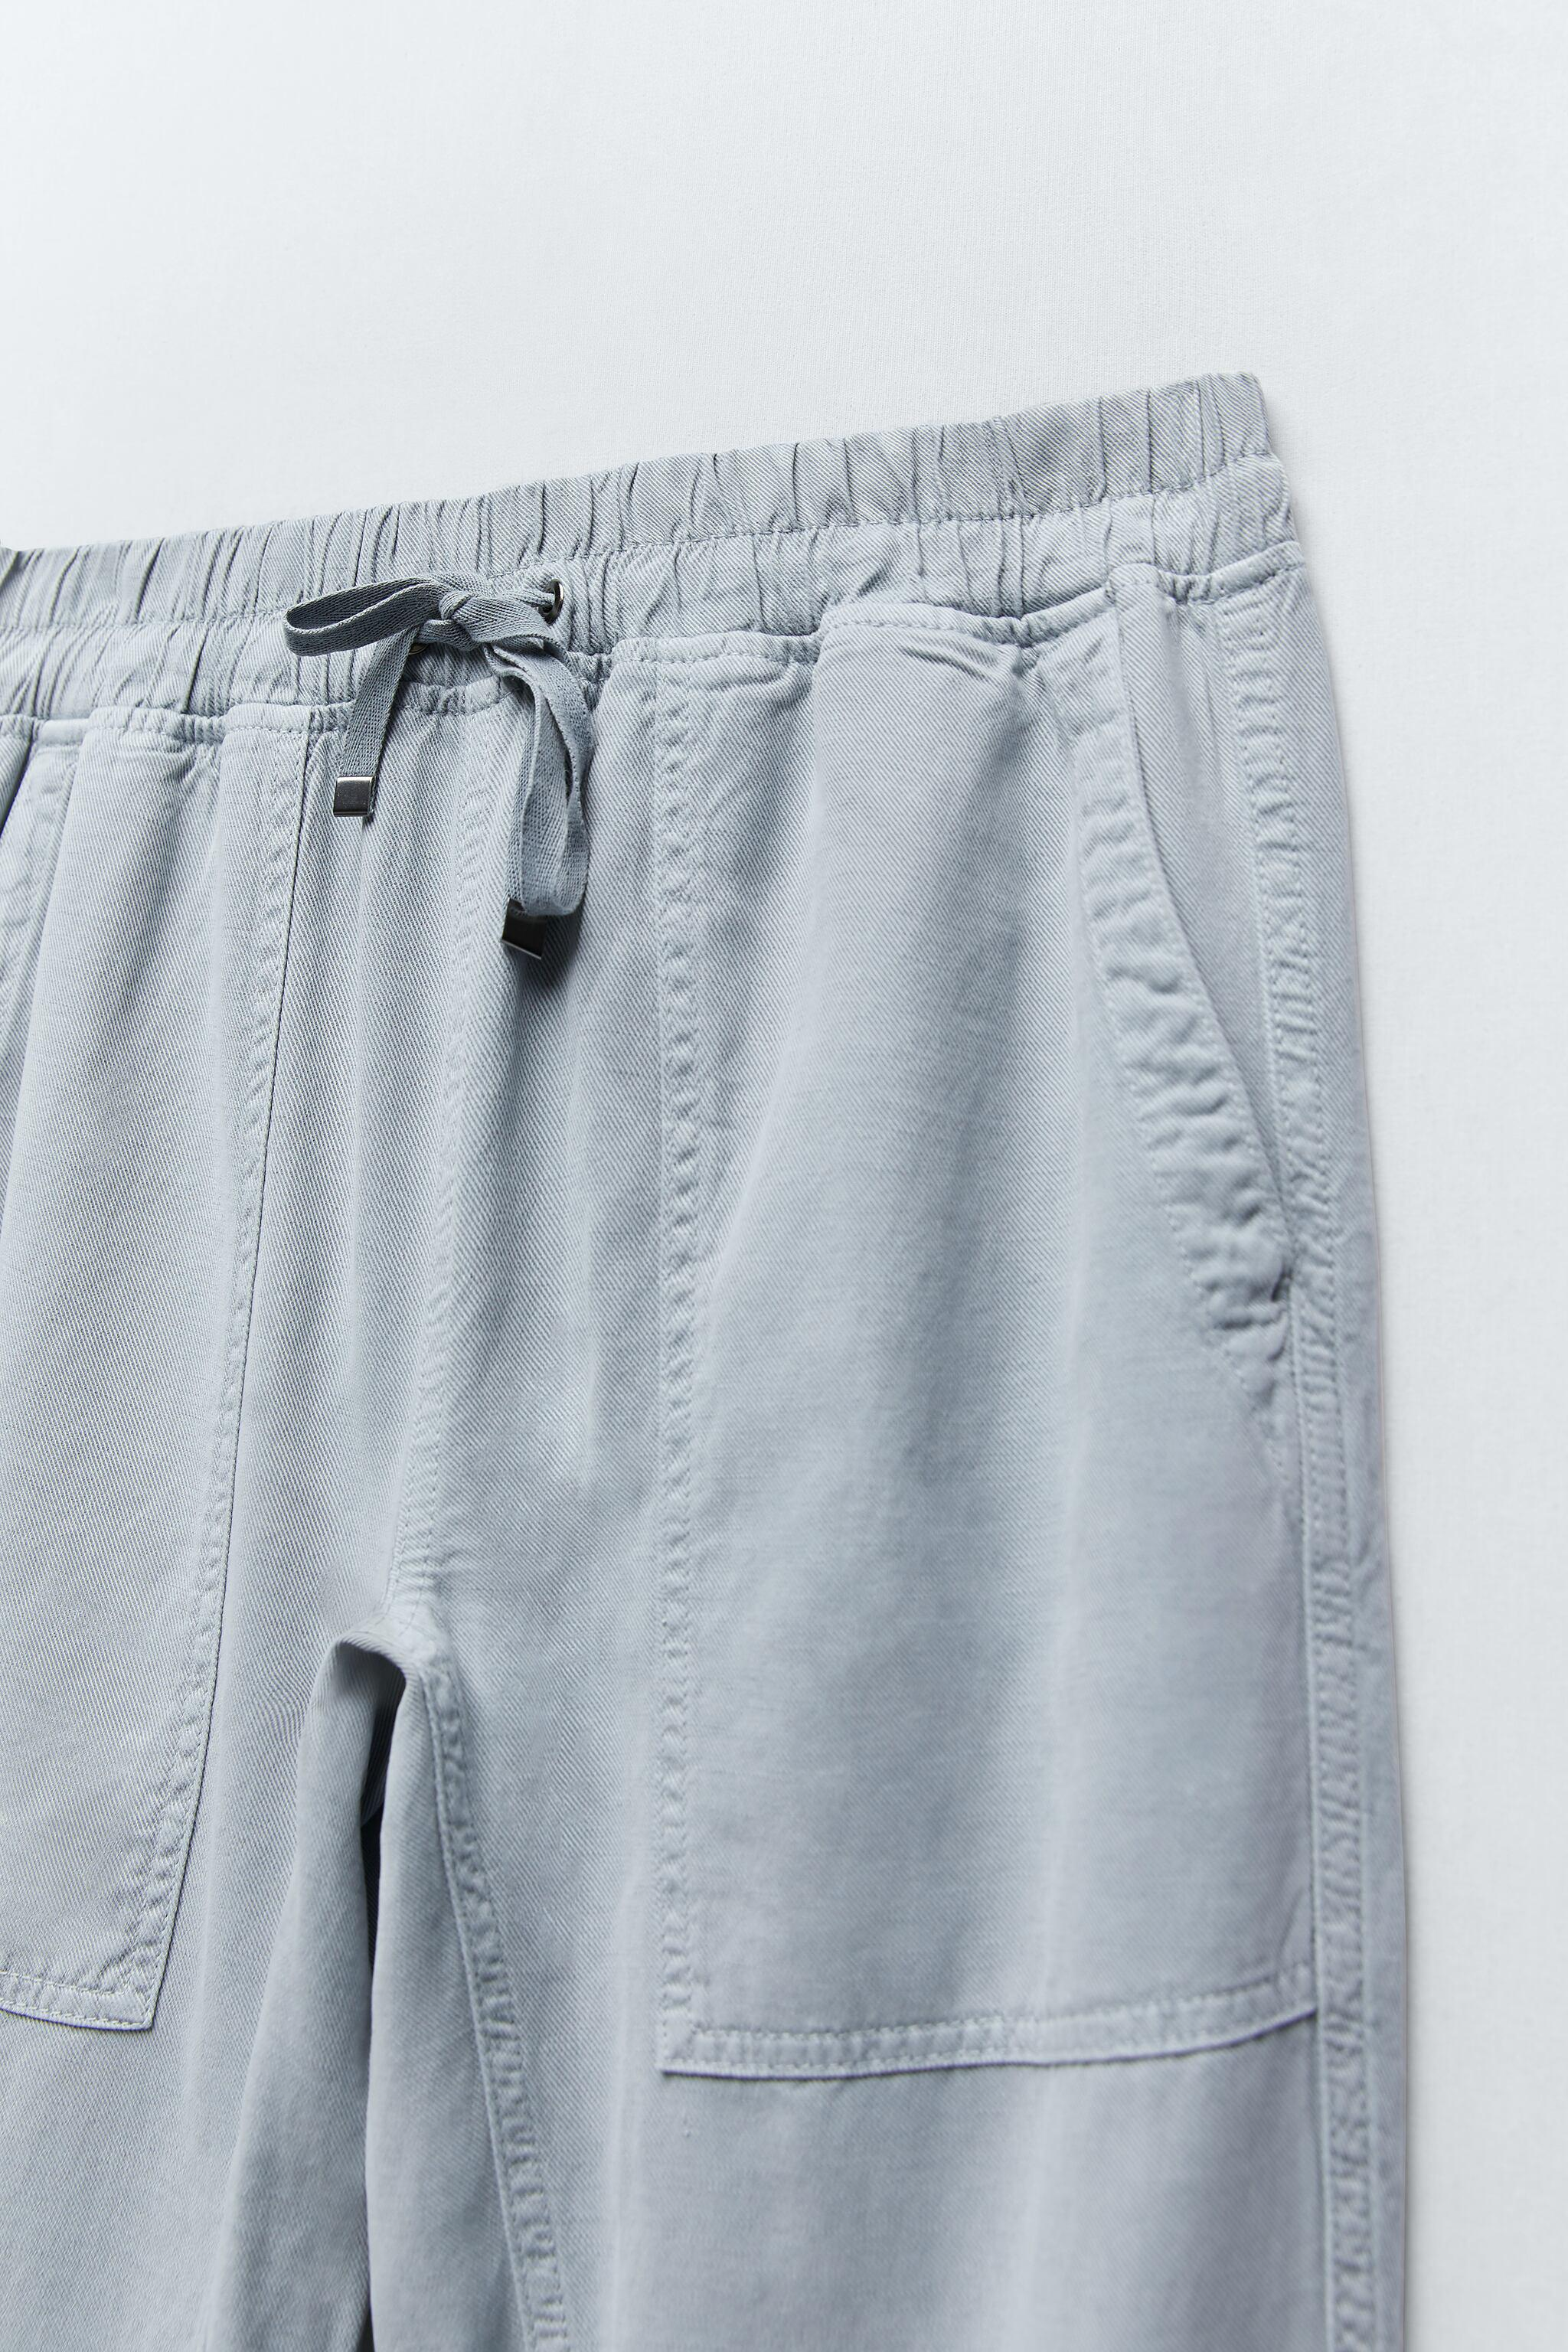 THE WEEKEND JOGGER PANTS 6